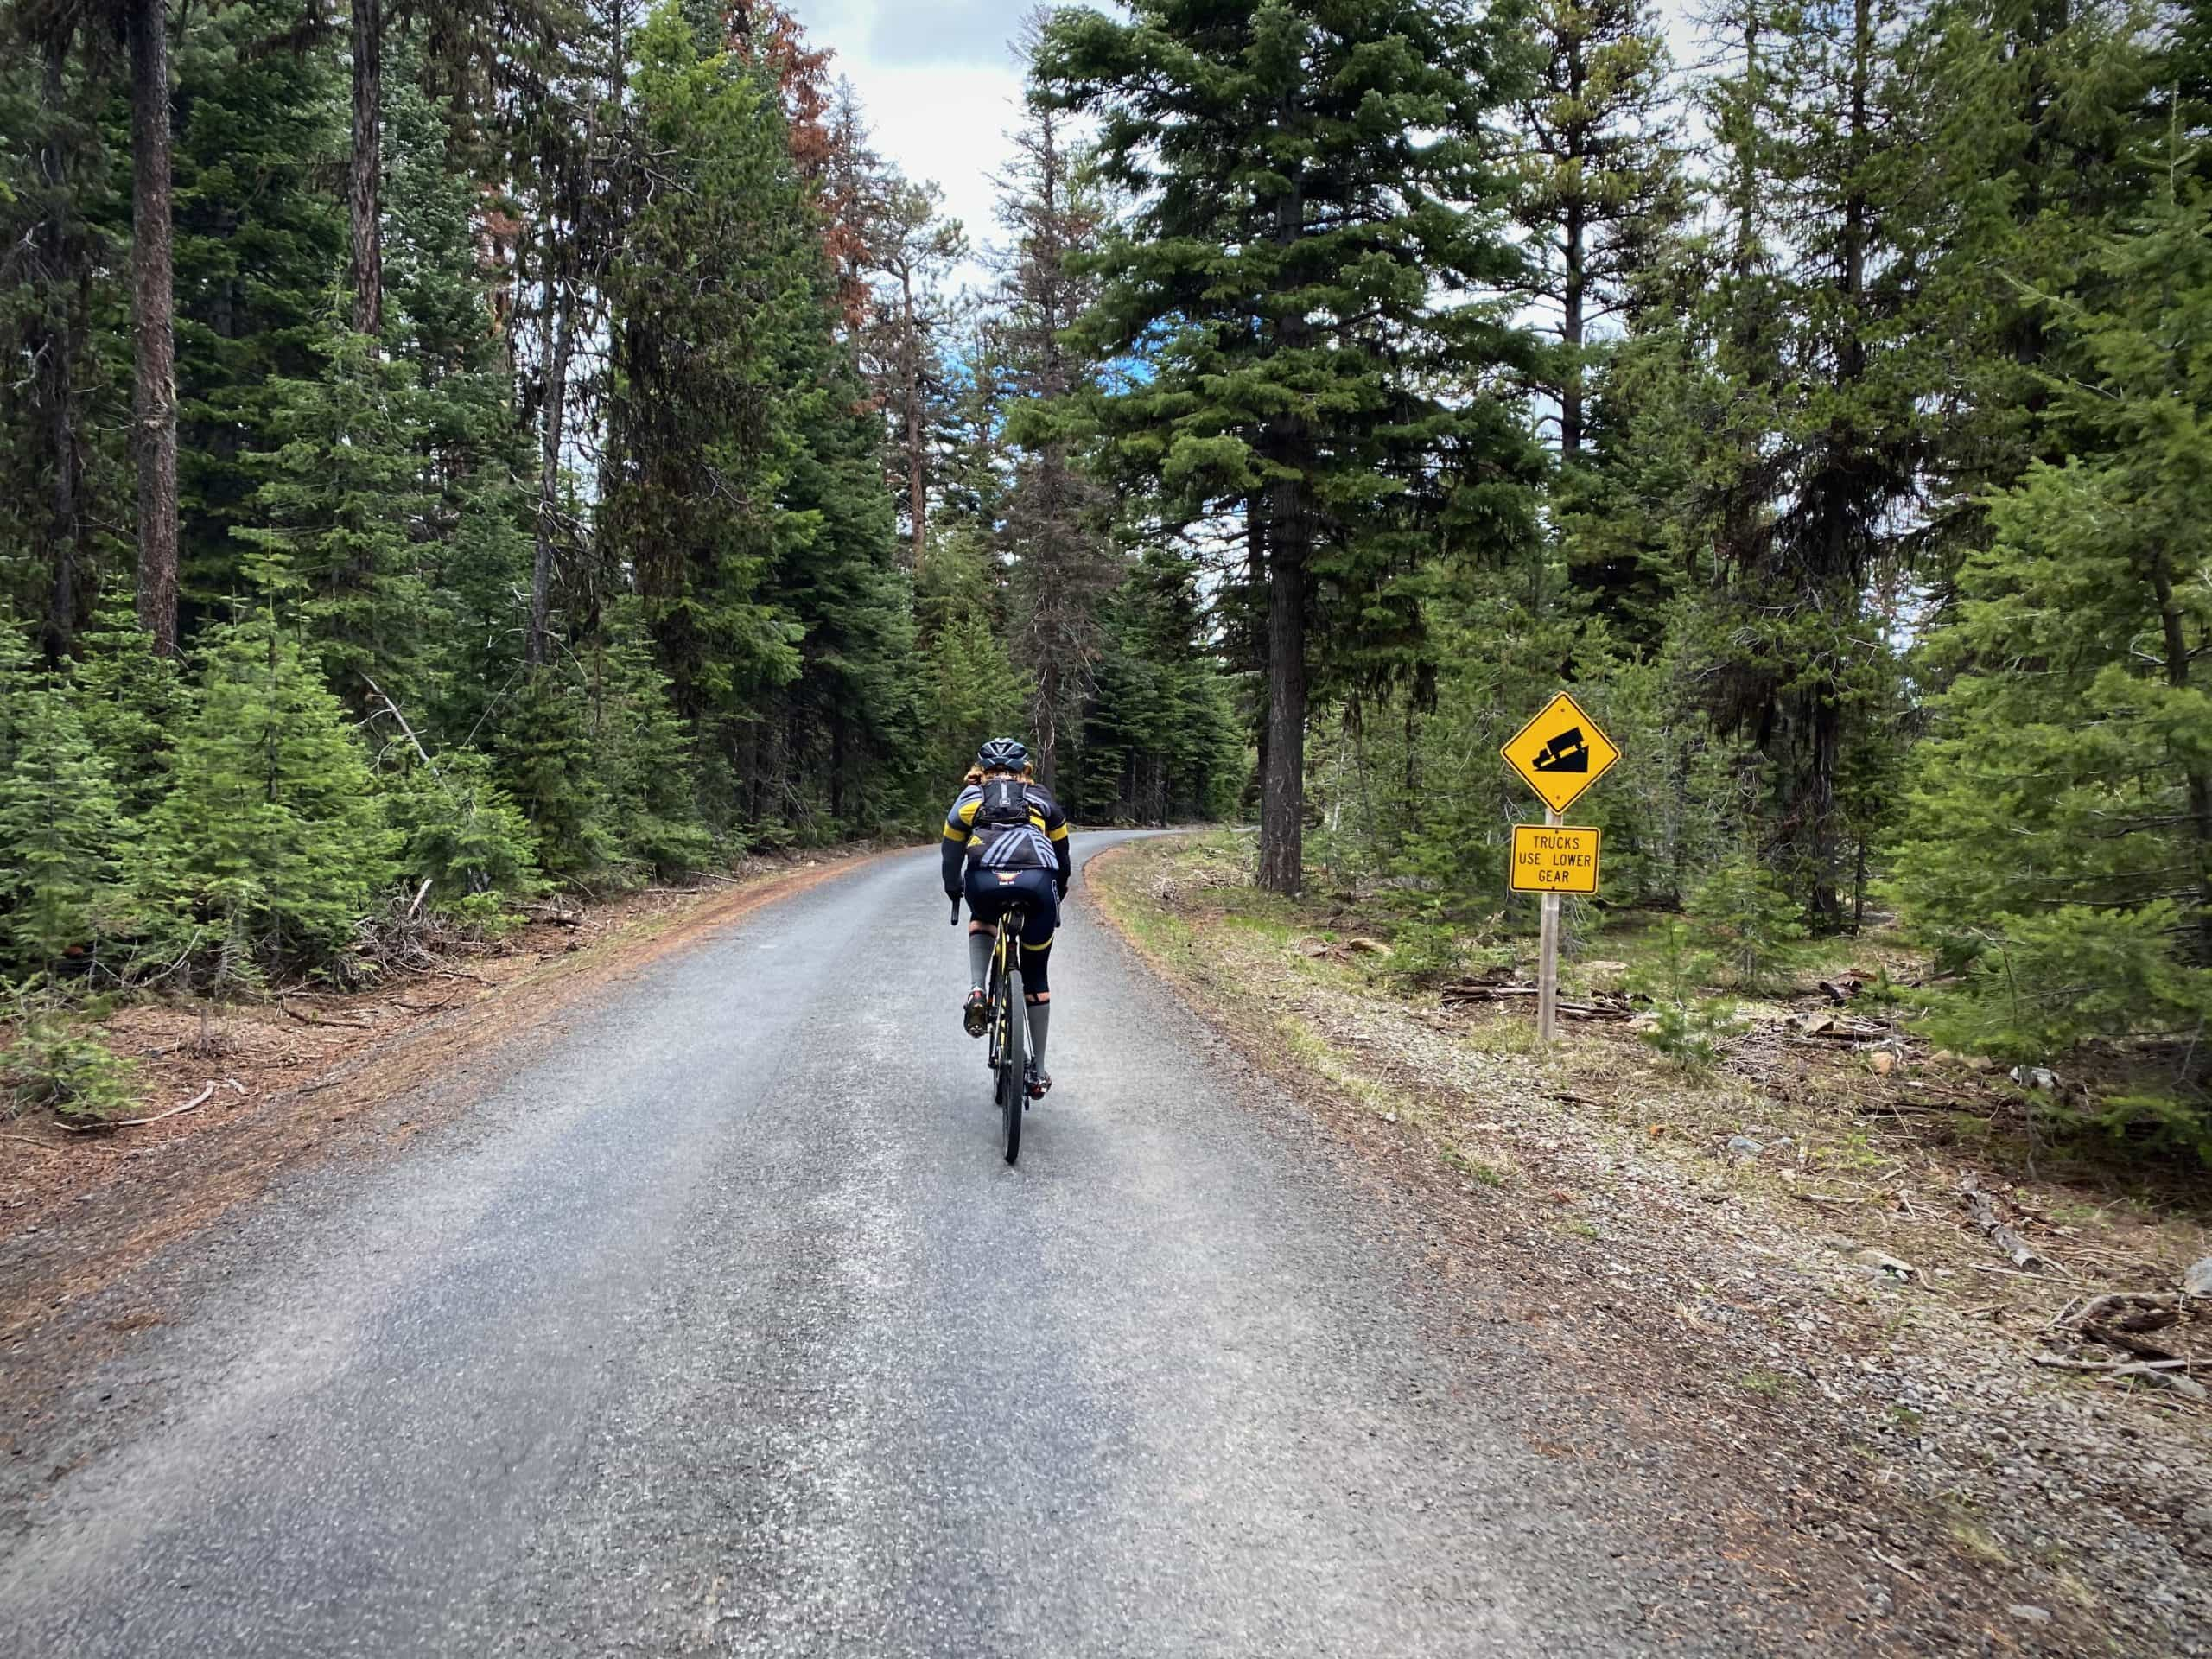 Cyclist about to begin the signature downhill on NF-12 near Mitchell, OR.